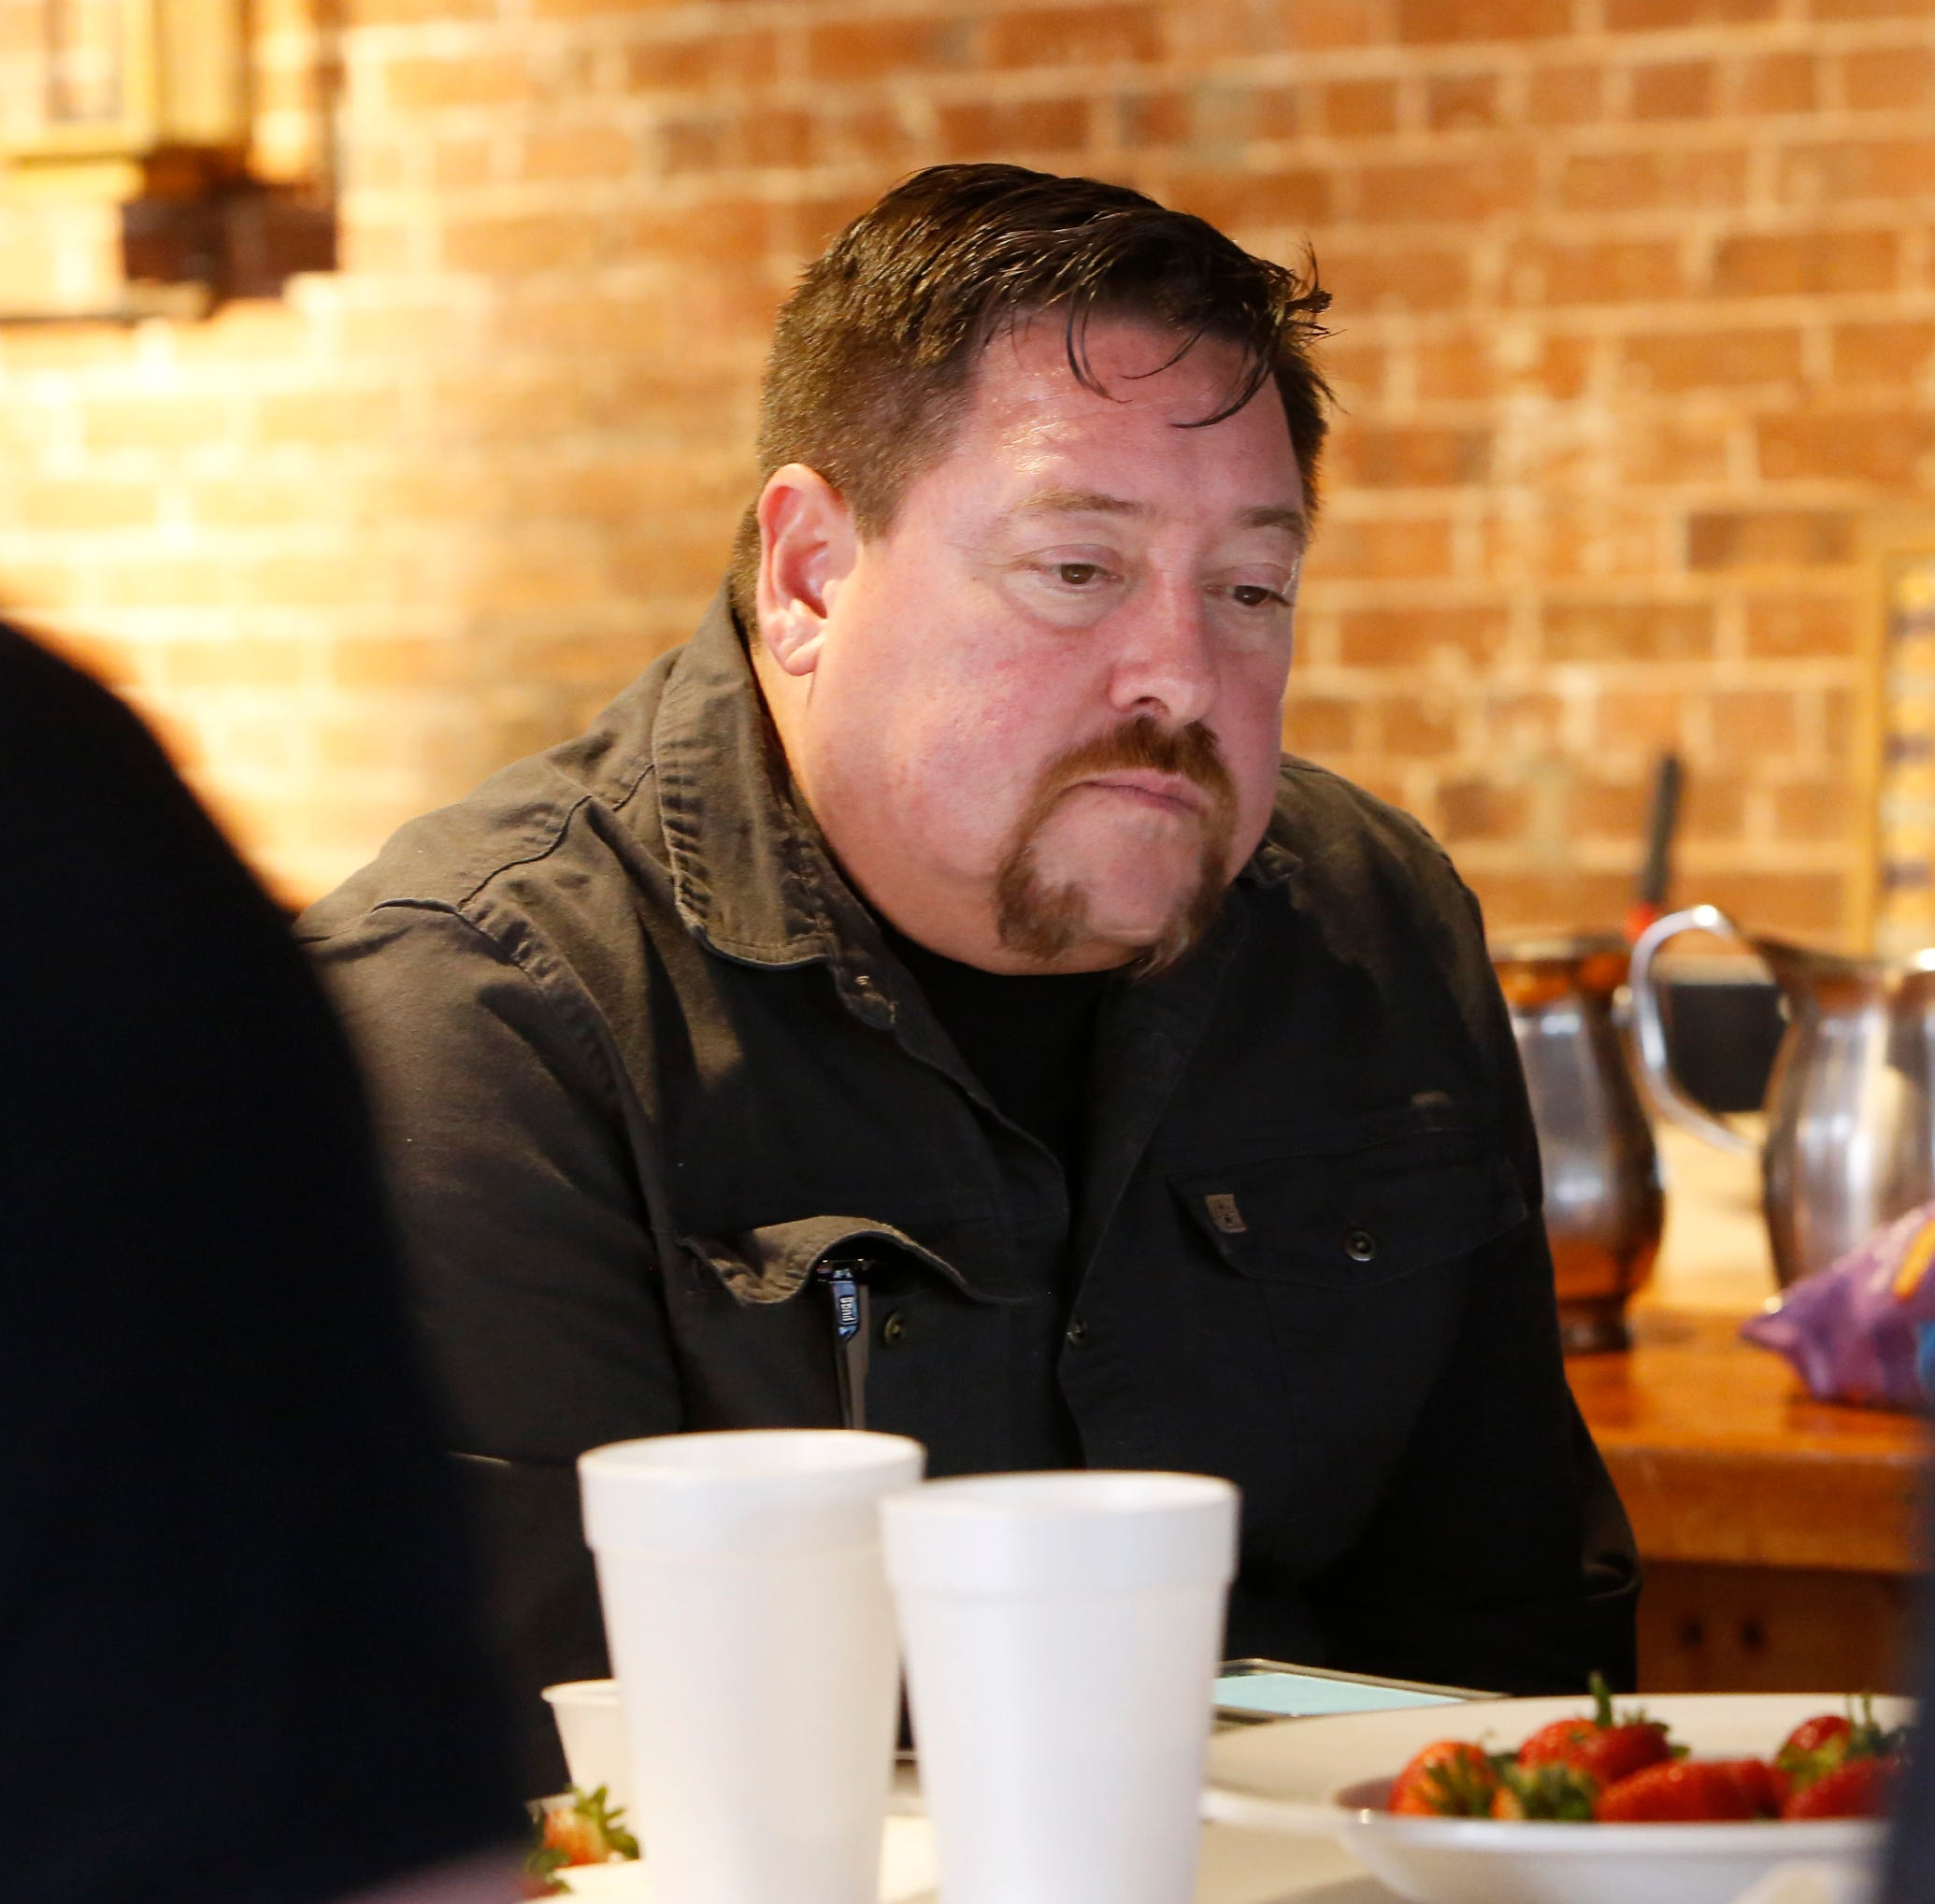 Greenville restaurant industry shares stories of substance abuse, meets challenges head on